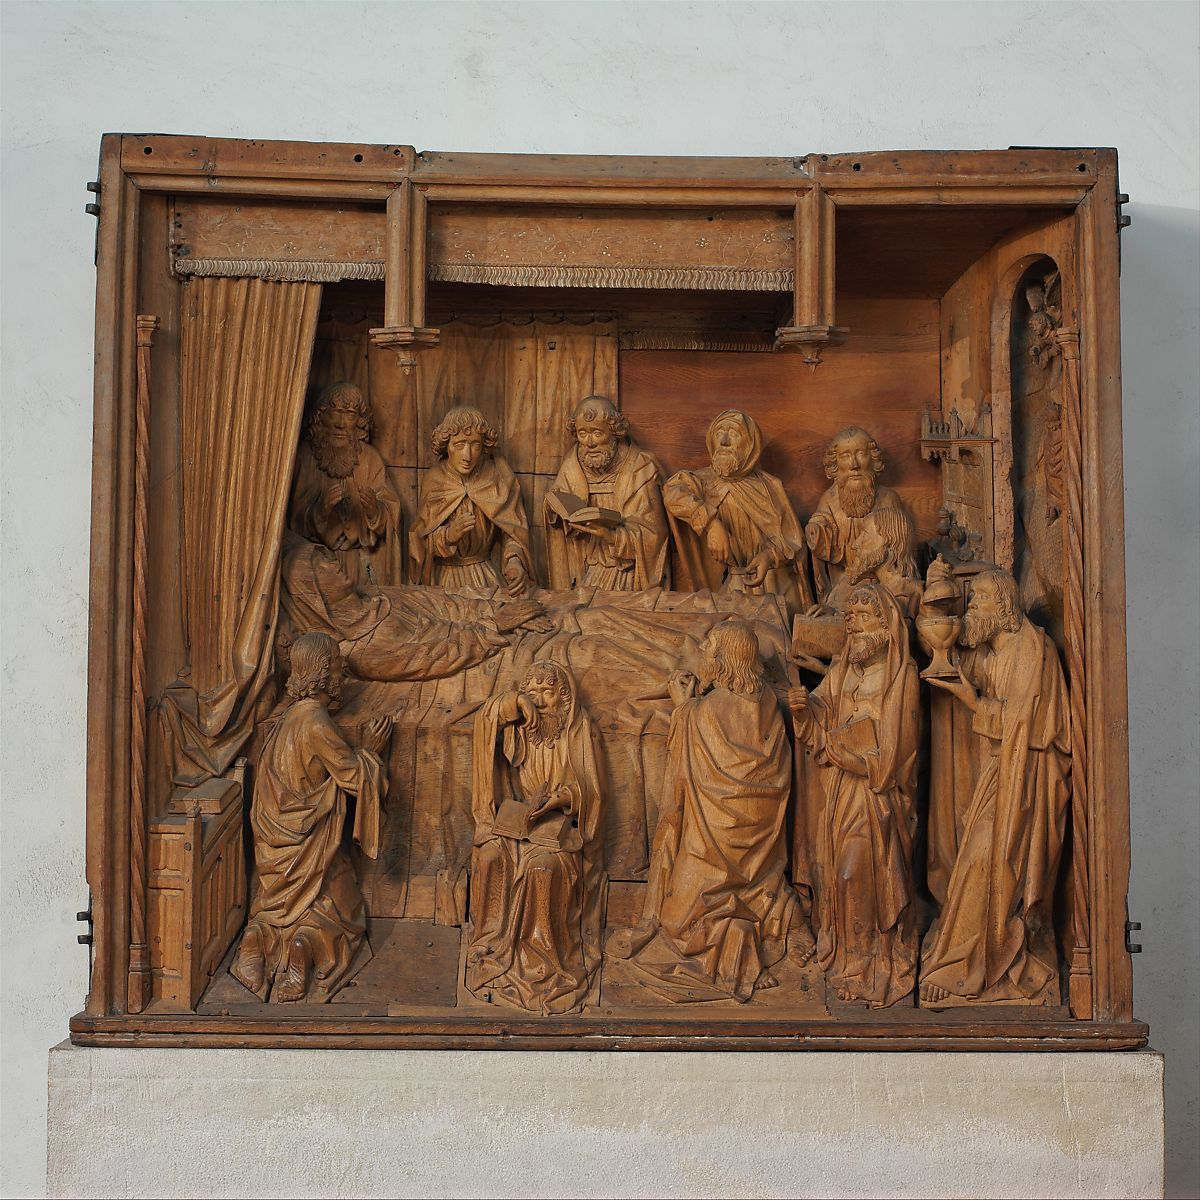 This high-relief sculpture, once painted, was the central scene of an altarpiece, the wings of which depicted the Birth of the Virgin and the Nativity.